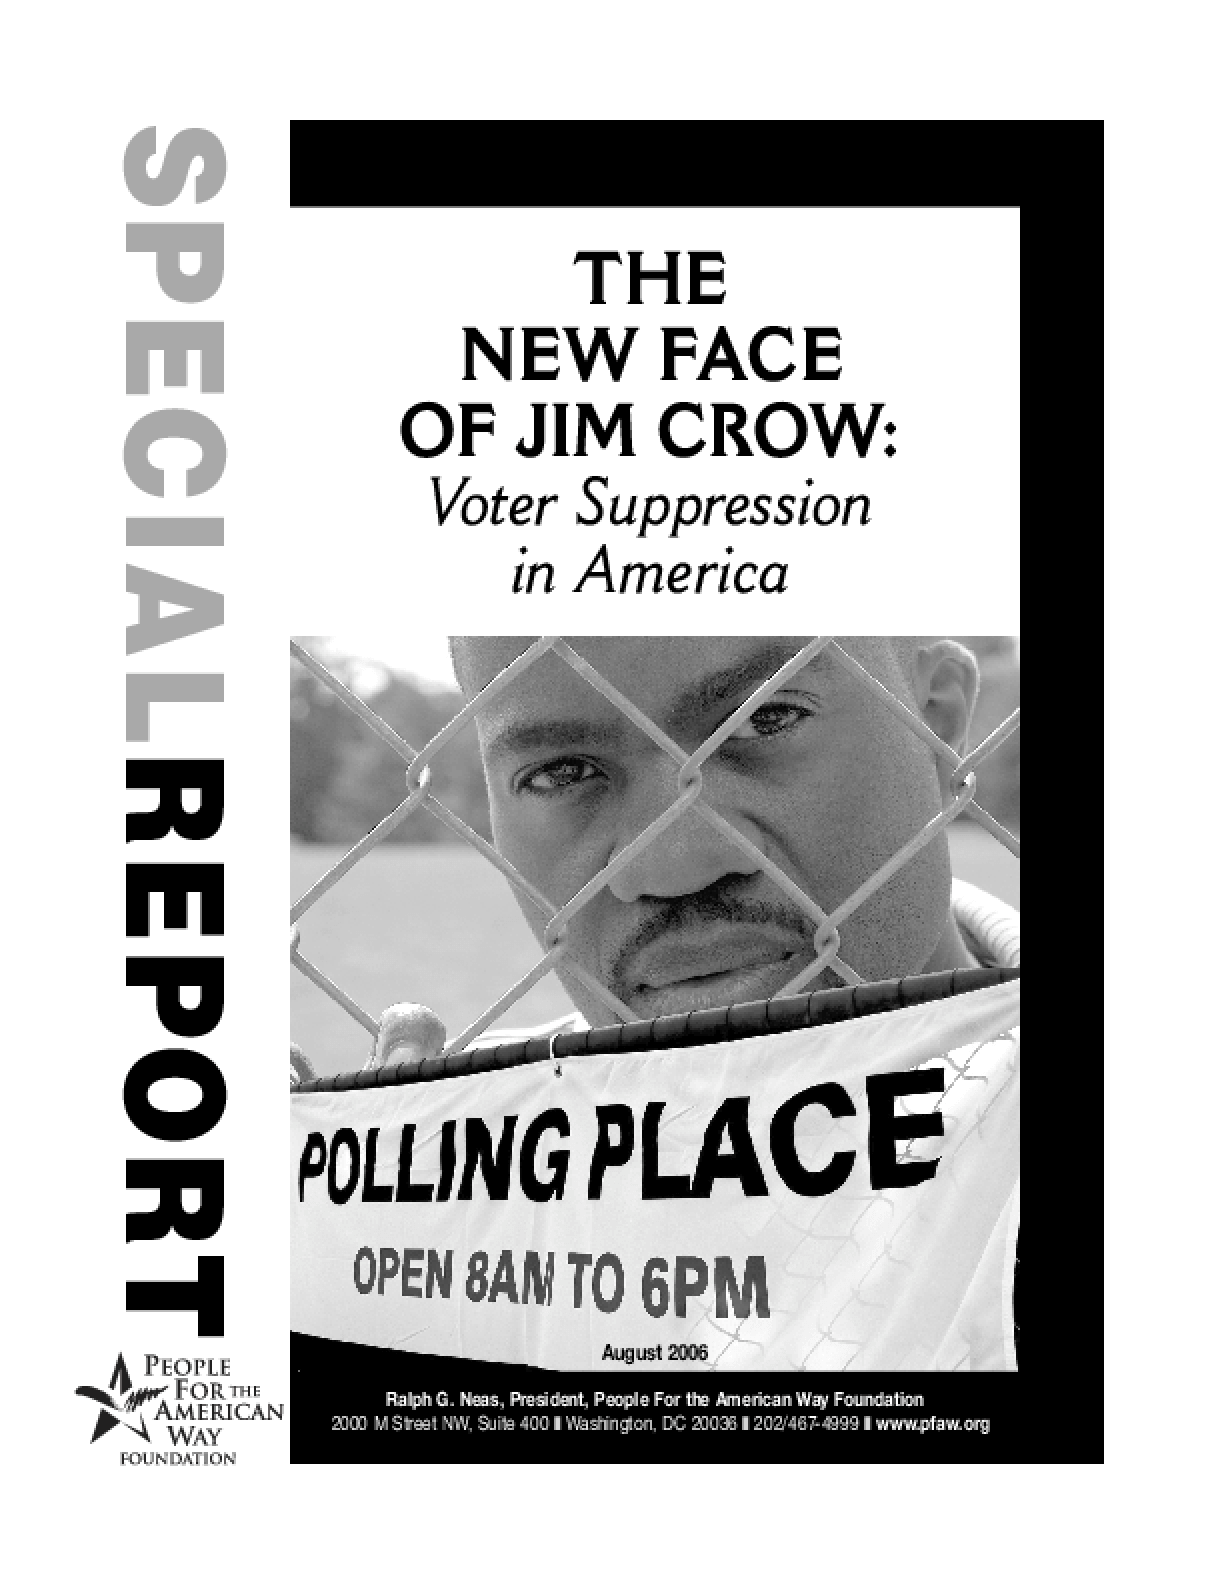 The New Face of Jim Crow: Voter Suppression in America